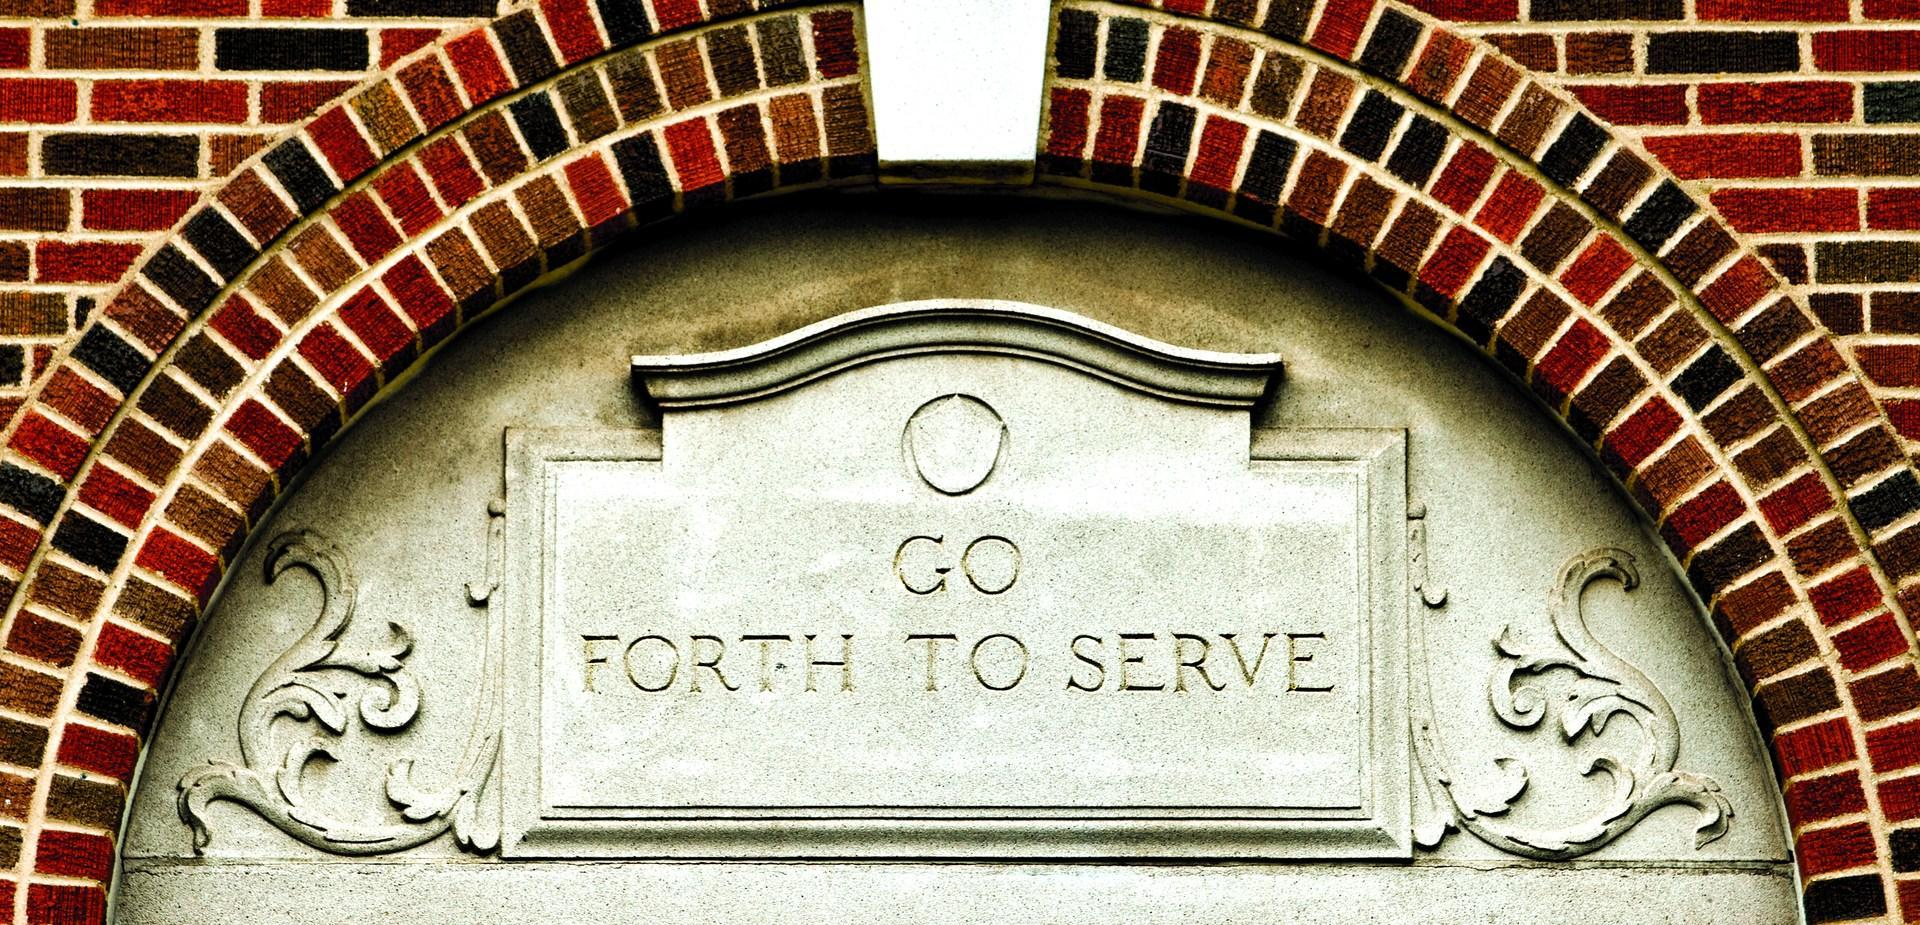 Enter to Learn. Go Forth to Serve.